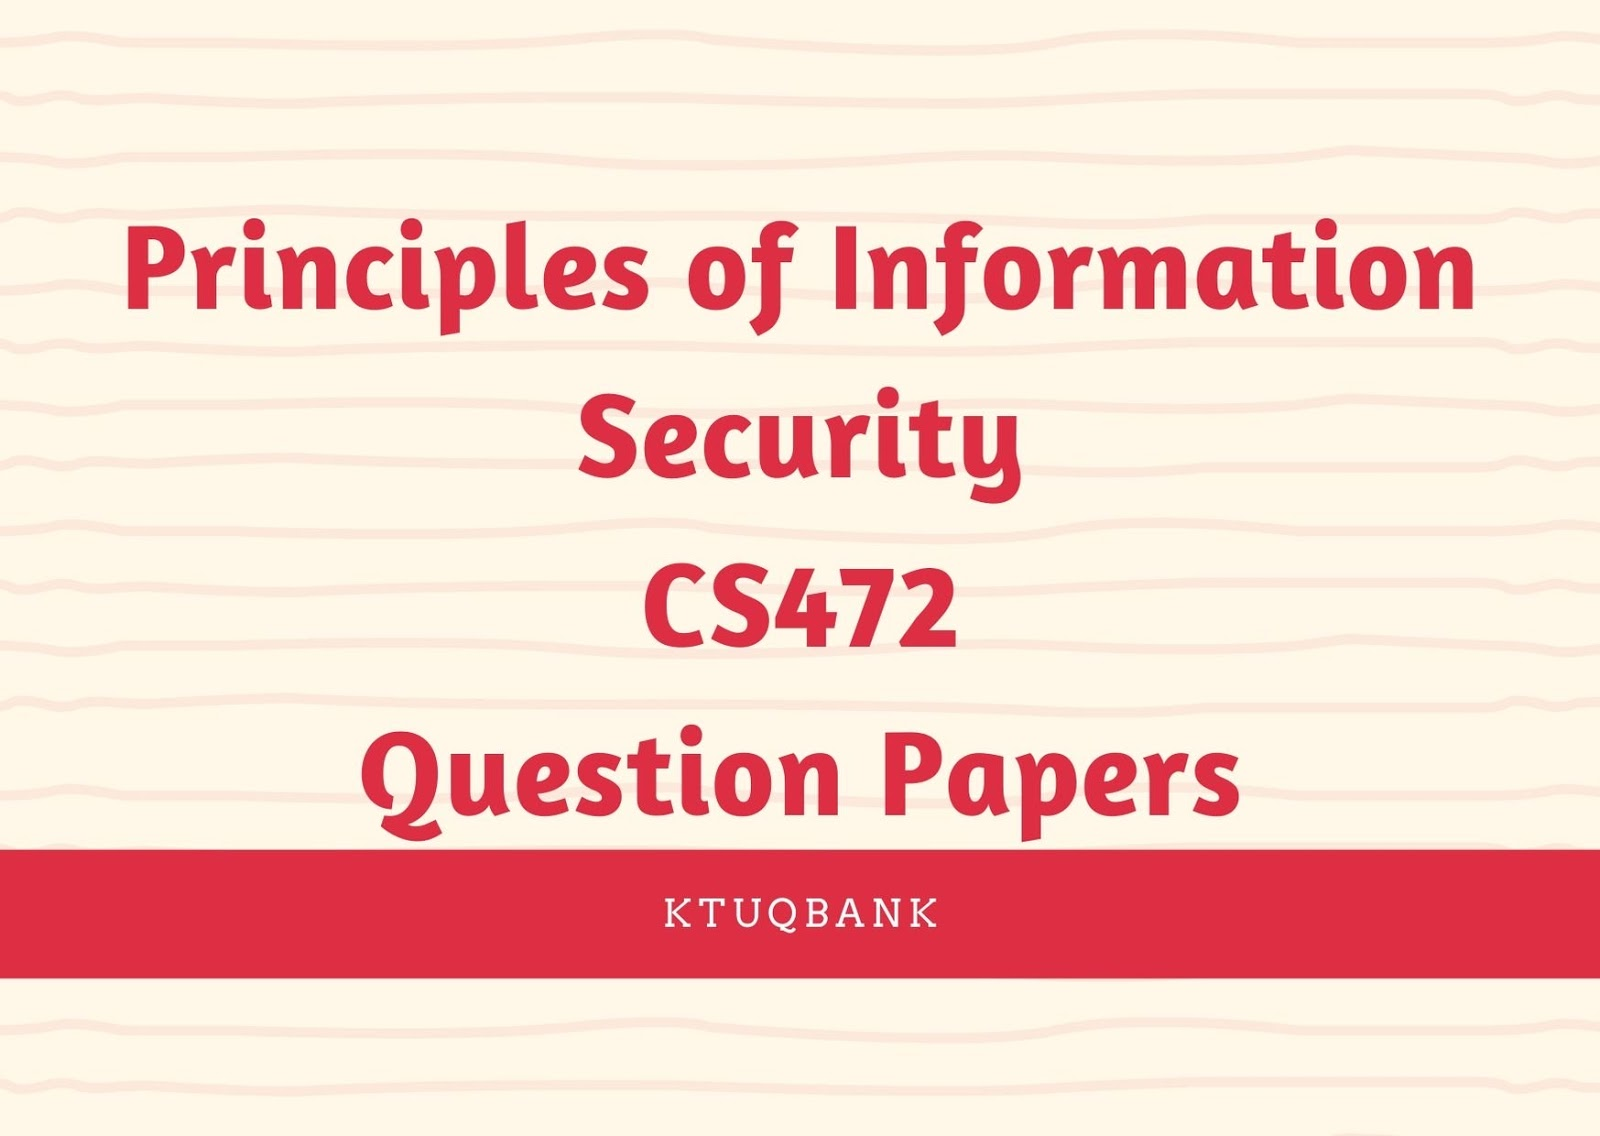 Principles of Information Security | CS472 | Question Papers (2015 batch)